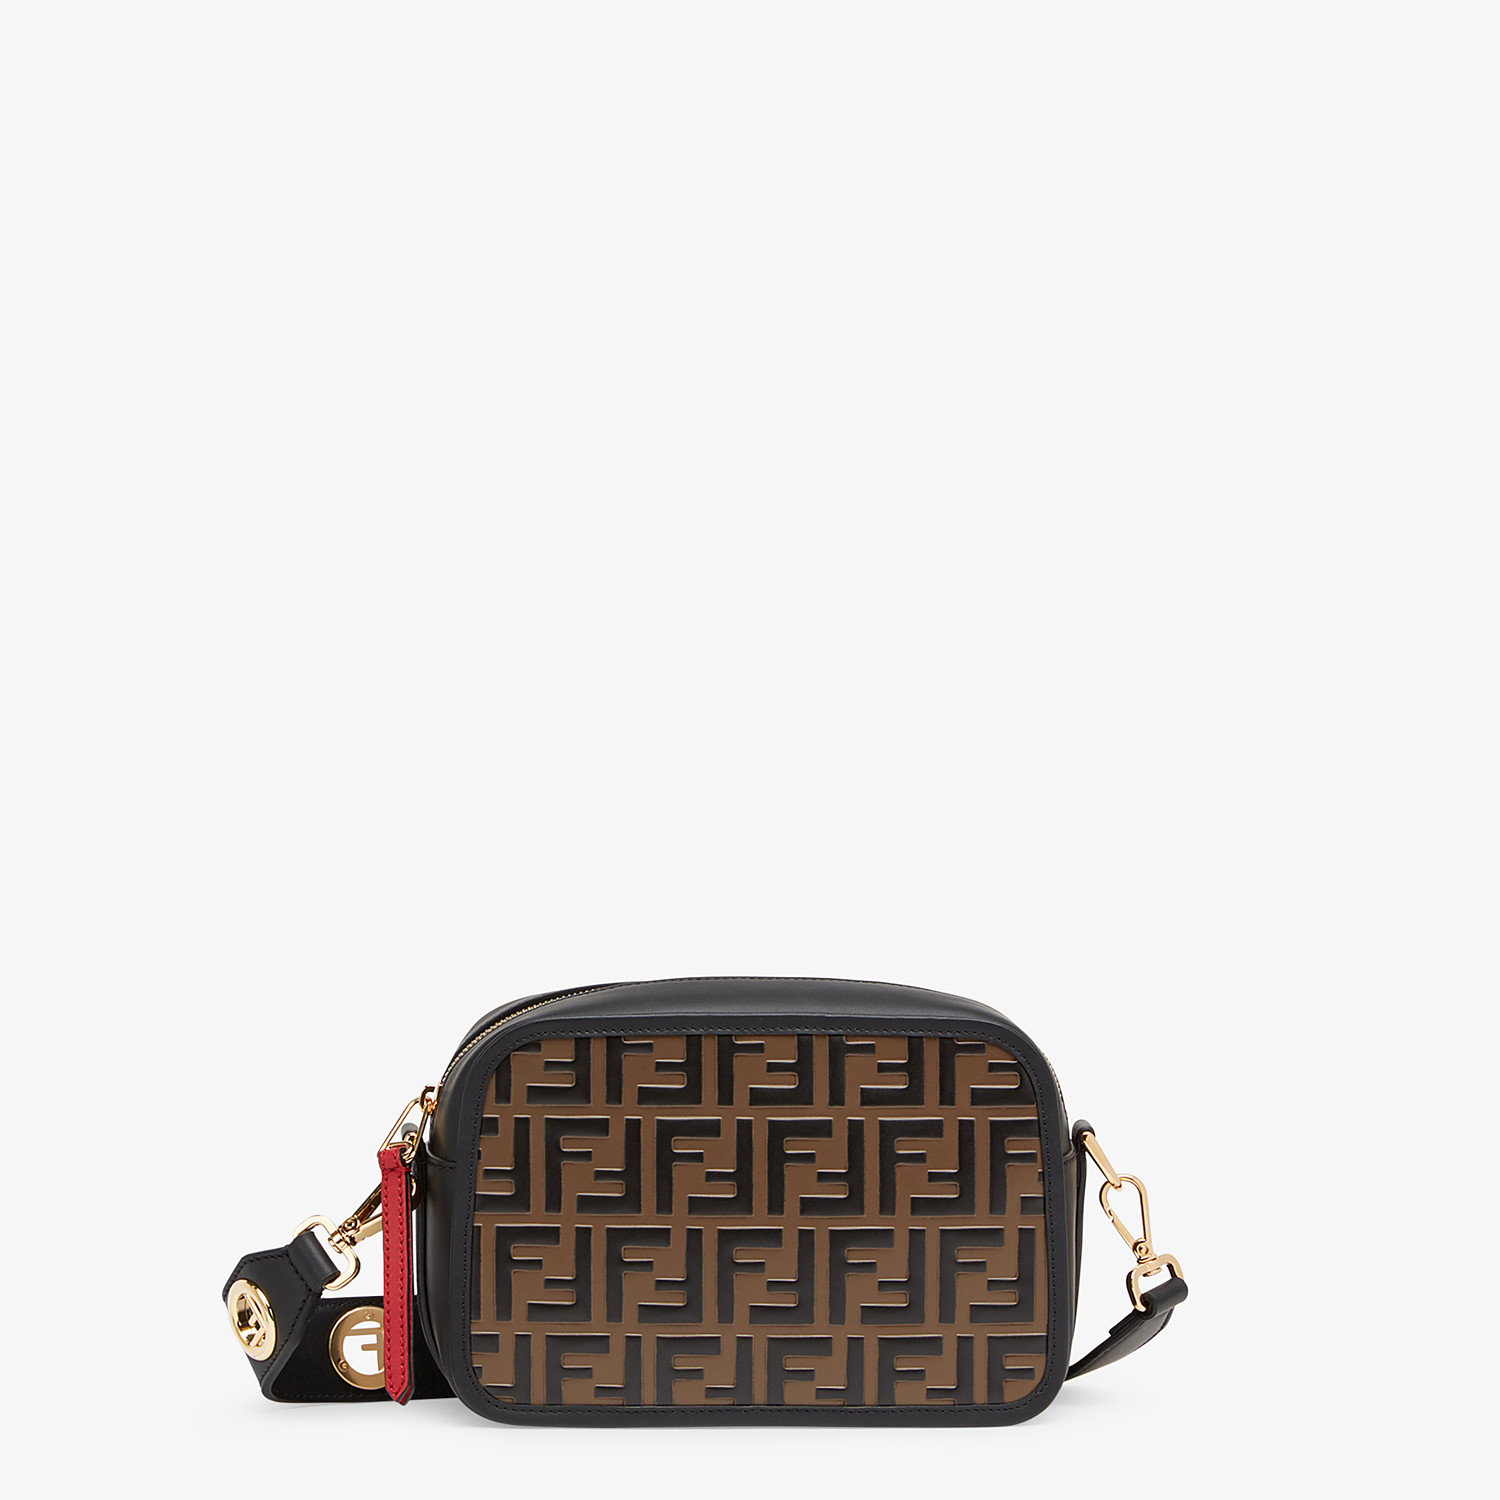 FENDI CAMERA CASE - Multicolour leather bag - view 1 detail